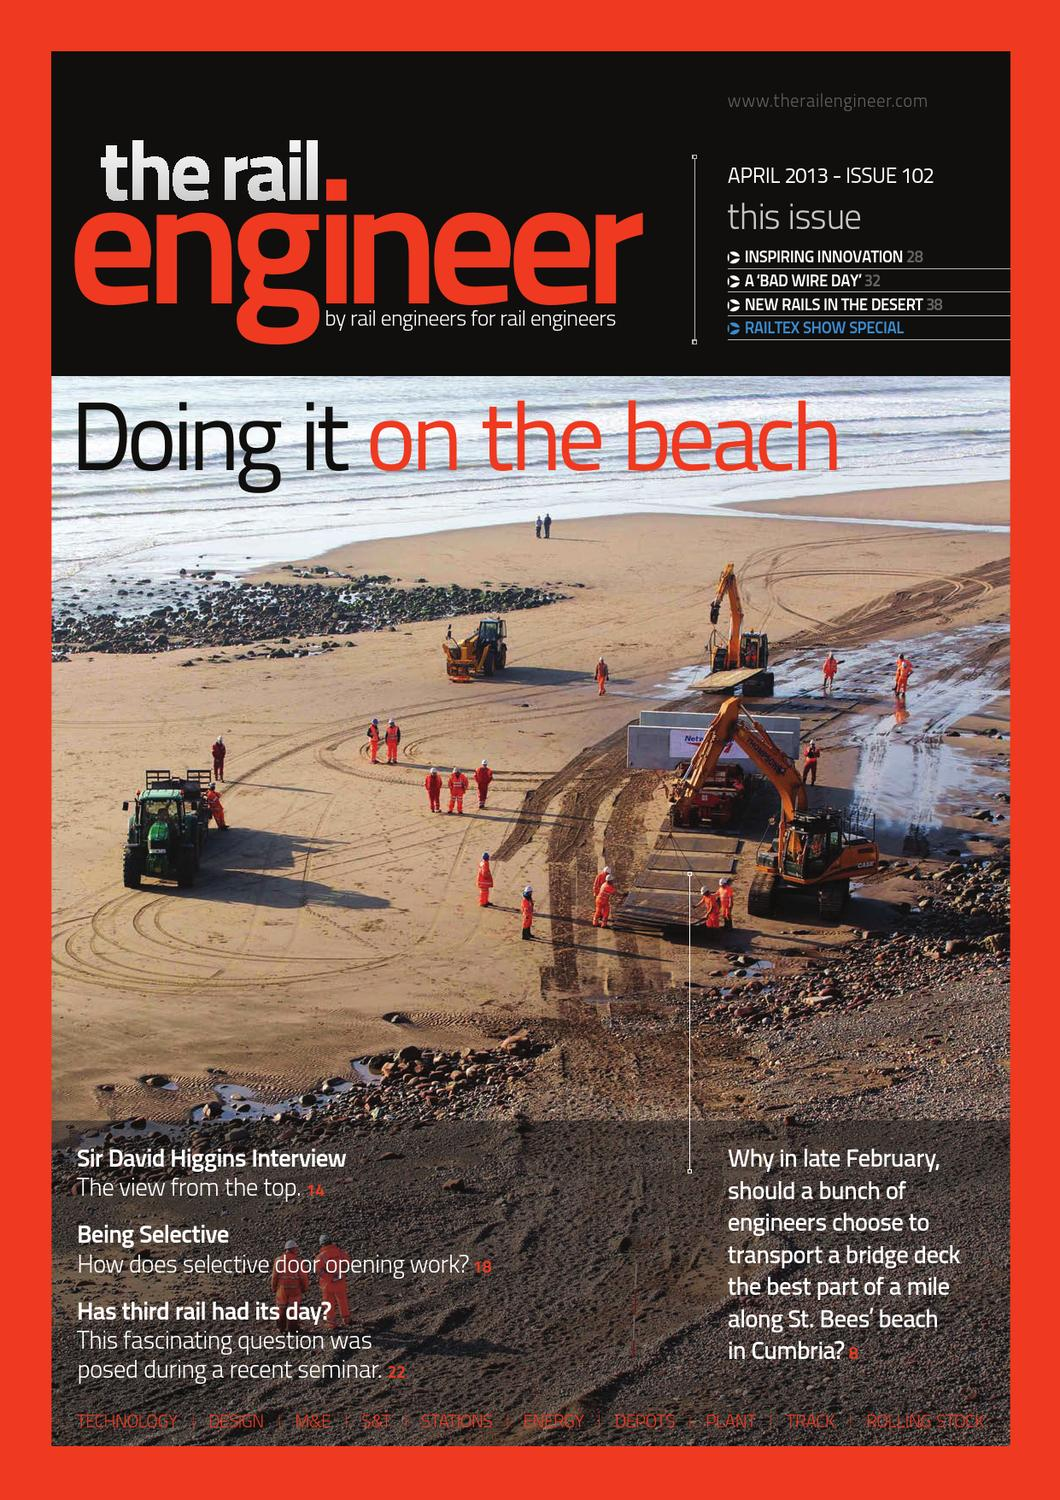 The Rail Engineer Issue 102 April 2013 By Media Issuu Air Conditioning C60 Overhead System Wiring Diagram G Models For